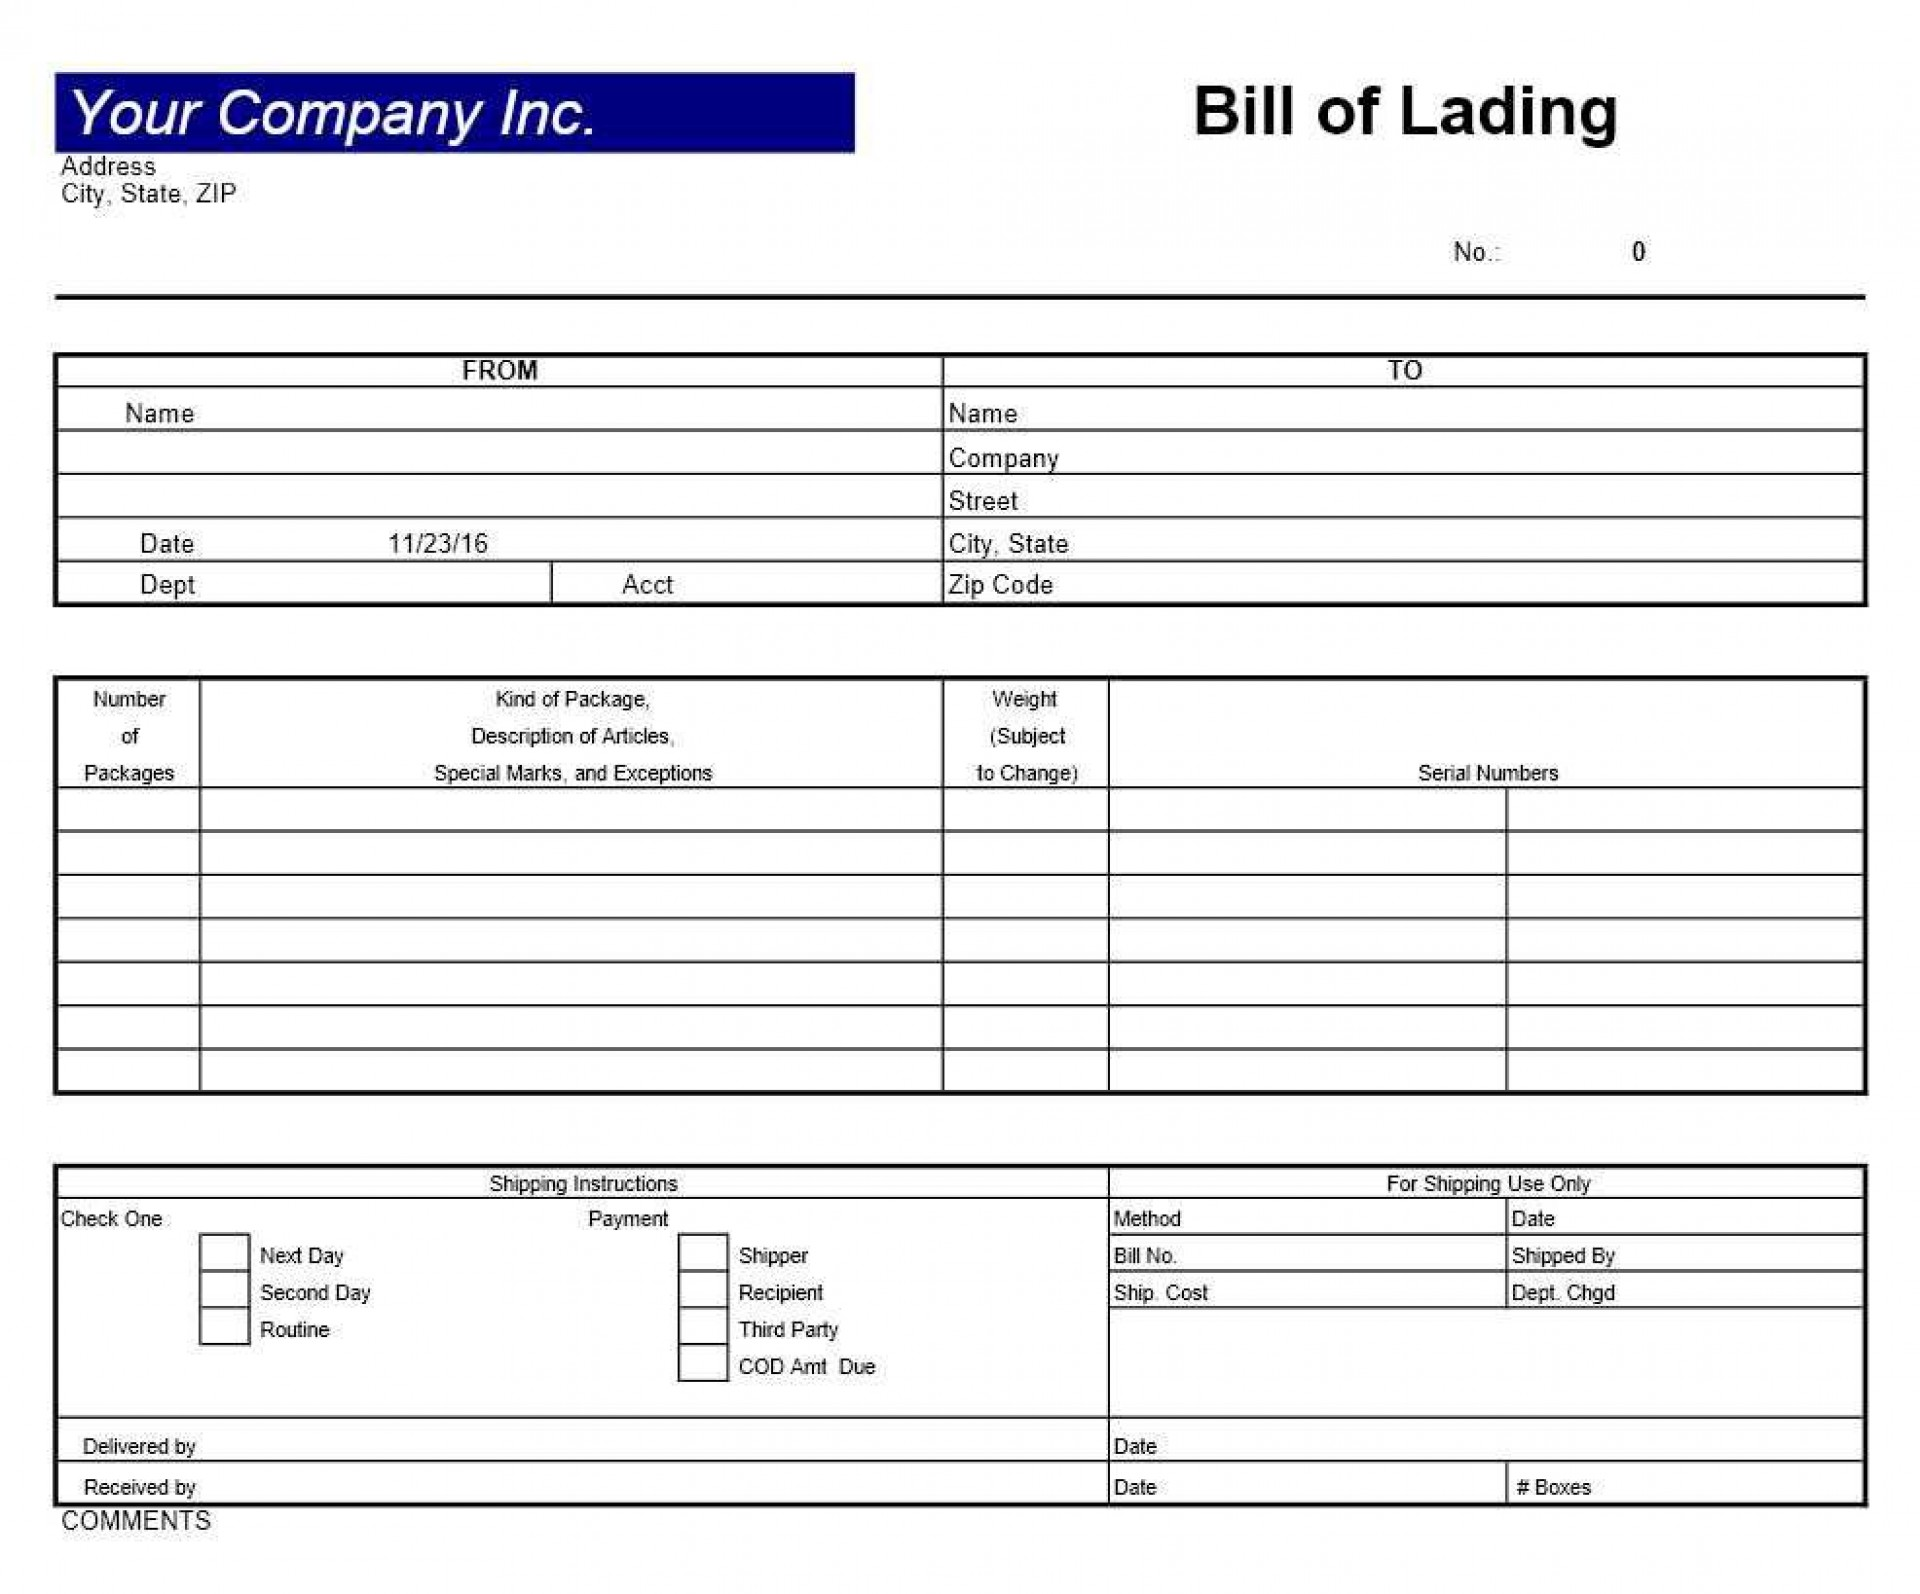 005 Wonderful Bill Of Lading Template Word 2003 Idea 1920